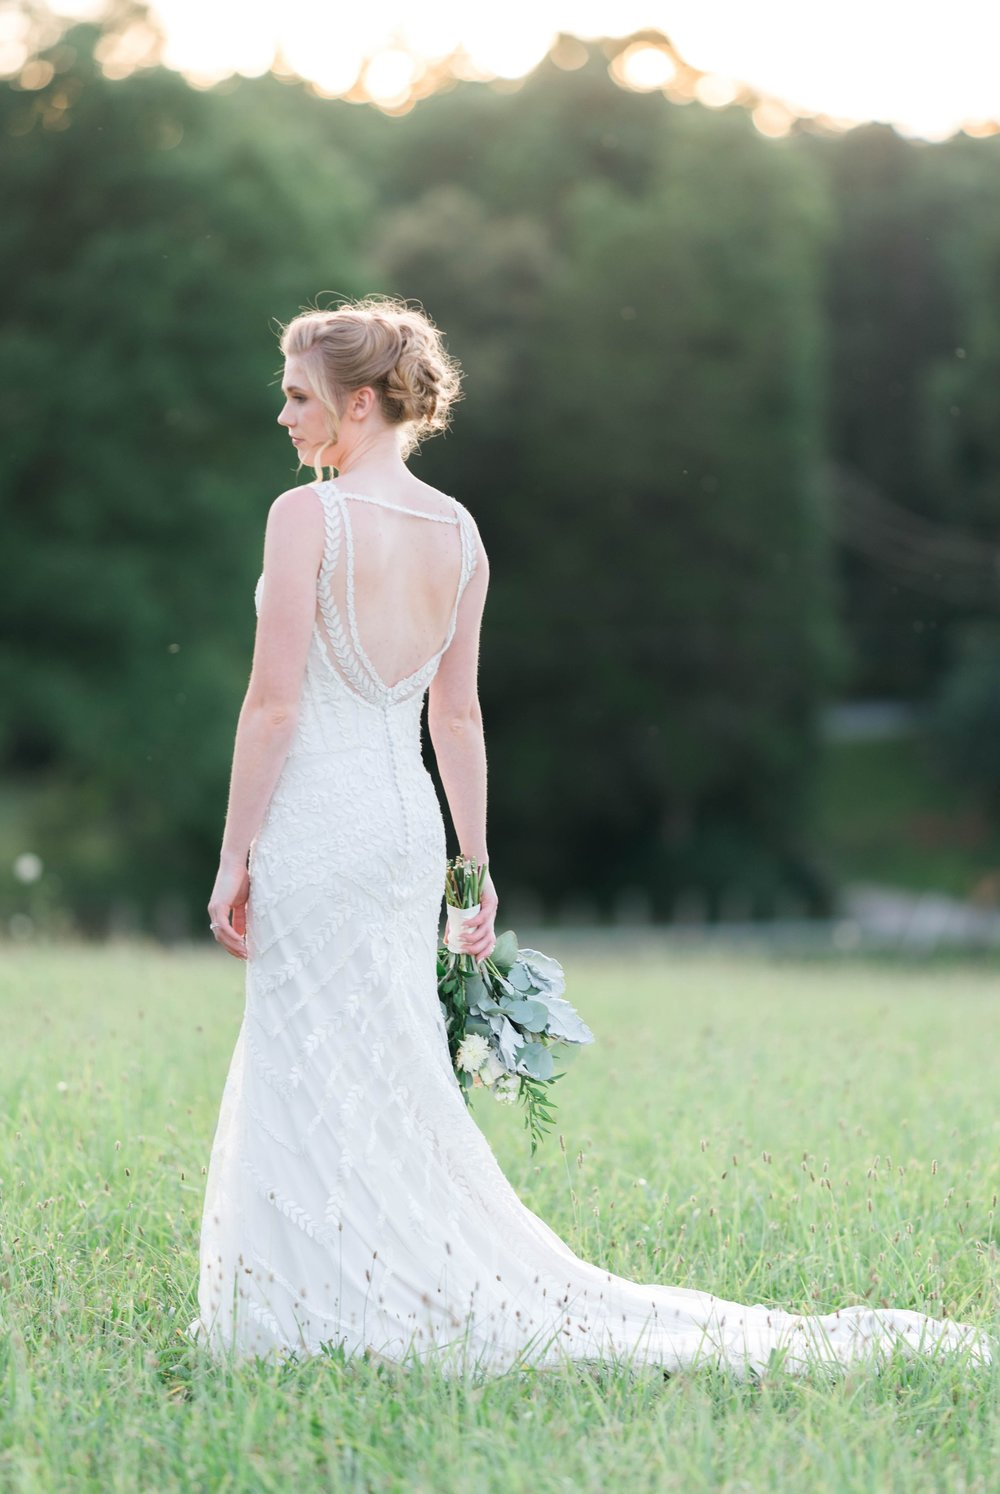 SorellaFarms_VirginiaWeddingPhotographer_BarnWedding_Lynchburgweddingphotographer_DanielleTyler 32.jpg